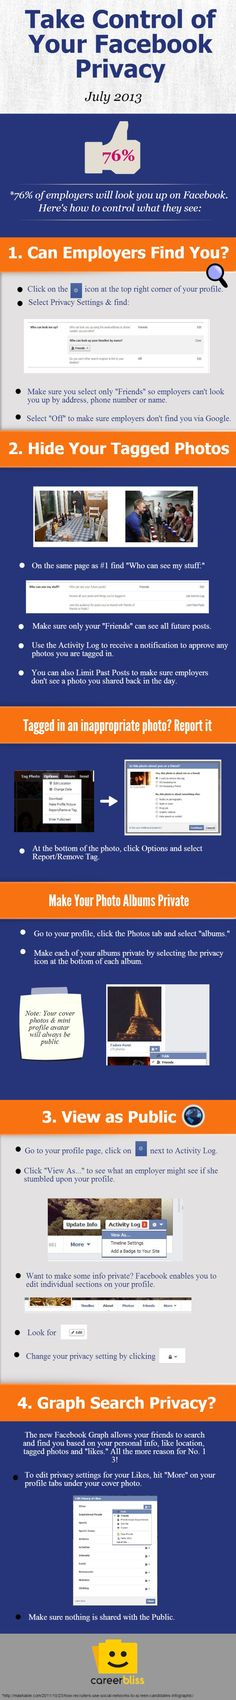 Take the control of your FaceBook privacy #infografia #infographic #socialmedia